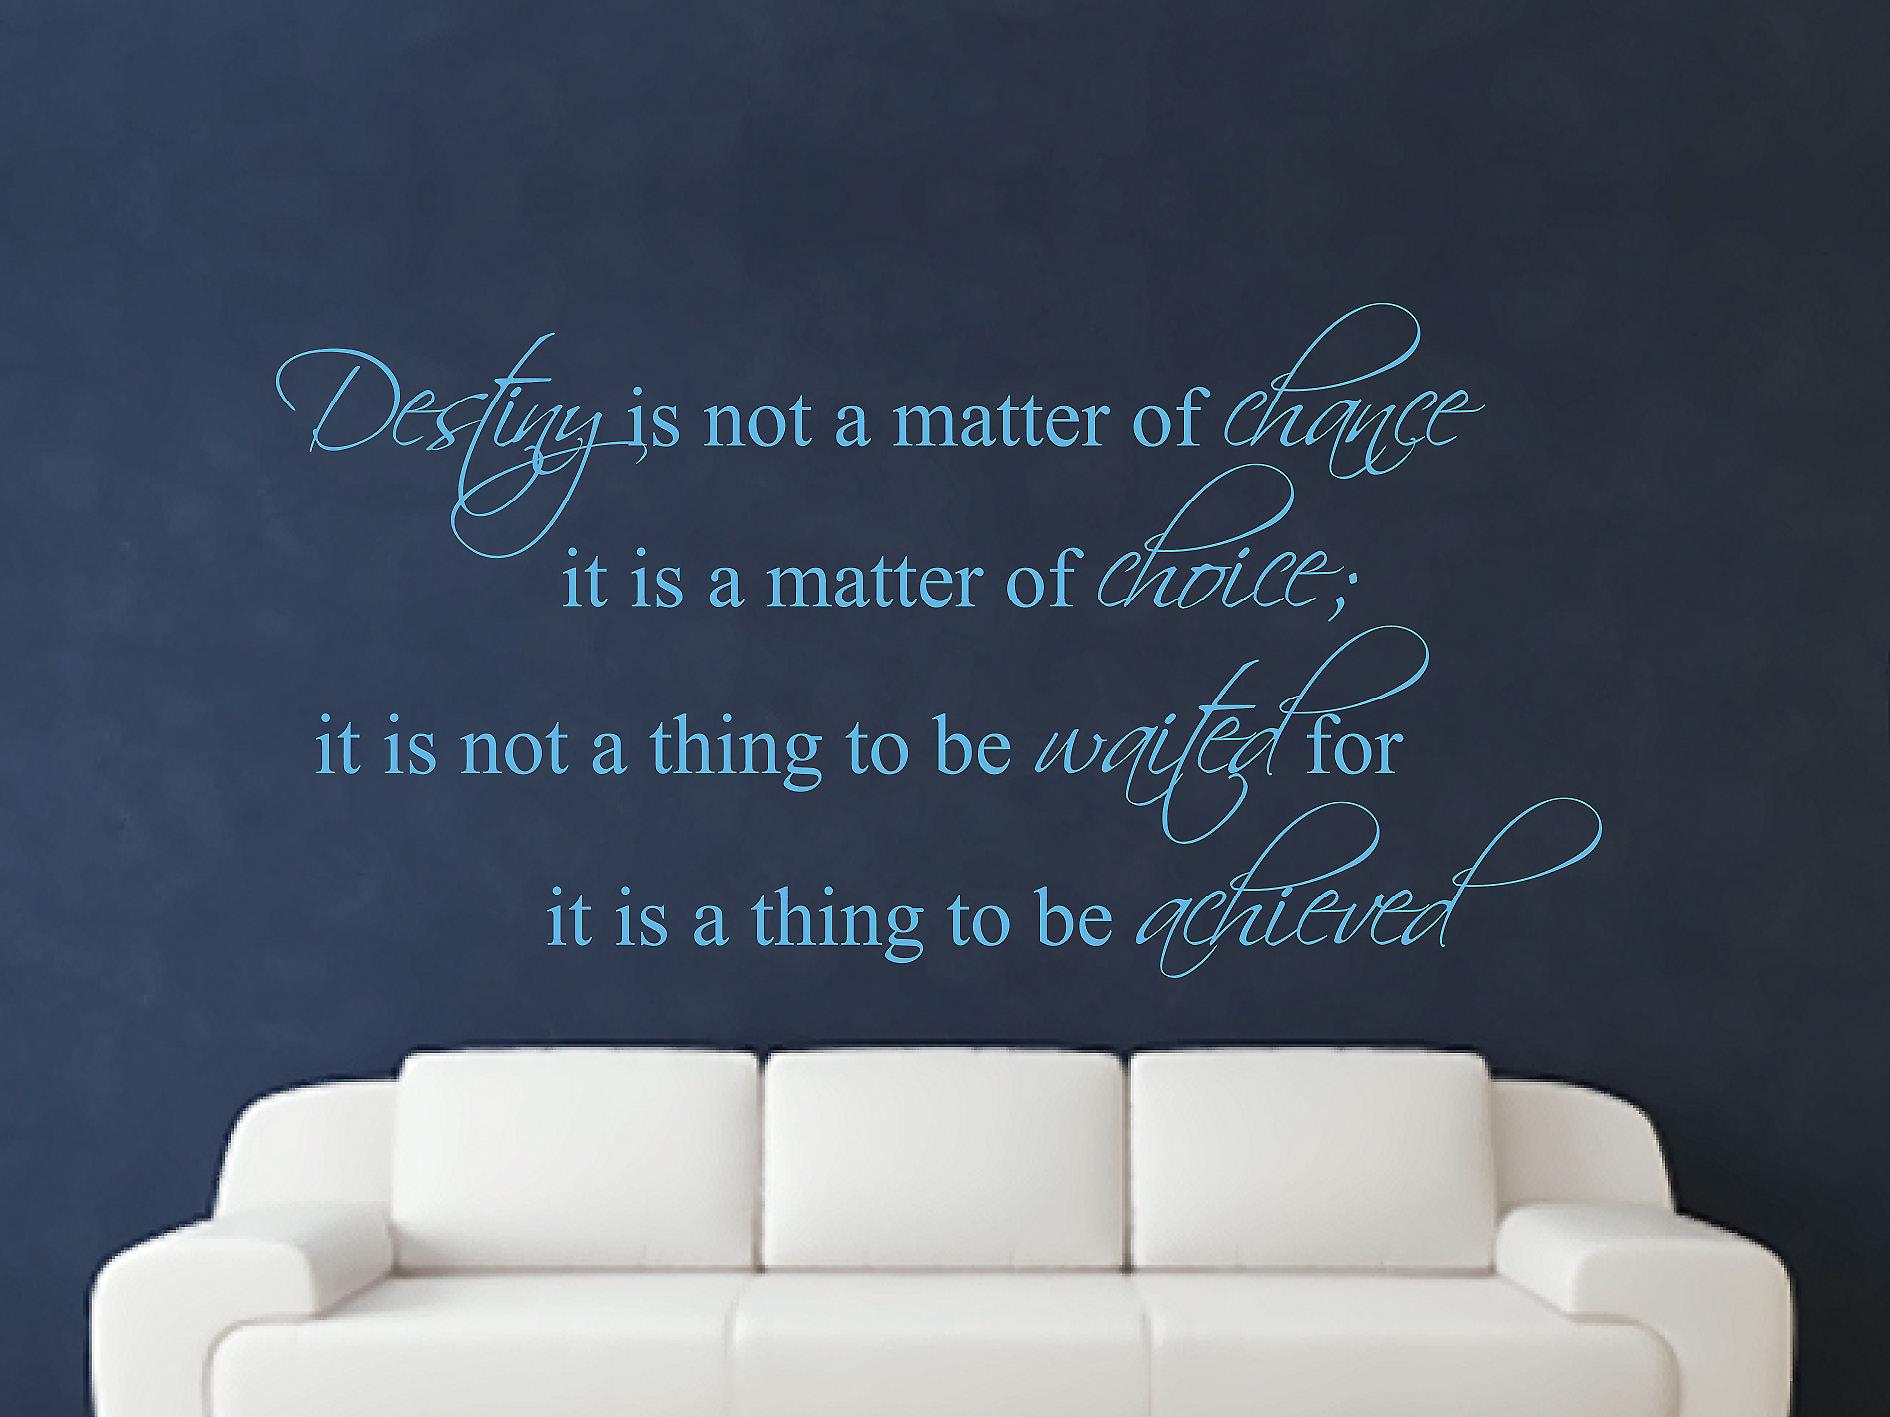 Destiny Is Not A Matter of Chance Wall Art Sticker - Arctic Blue